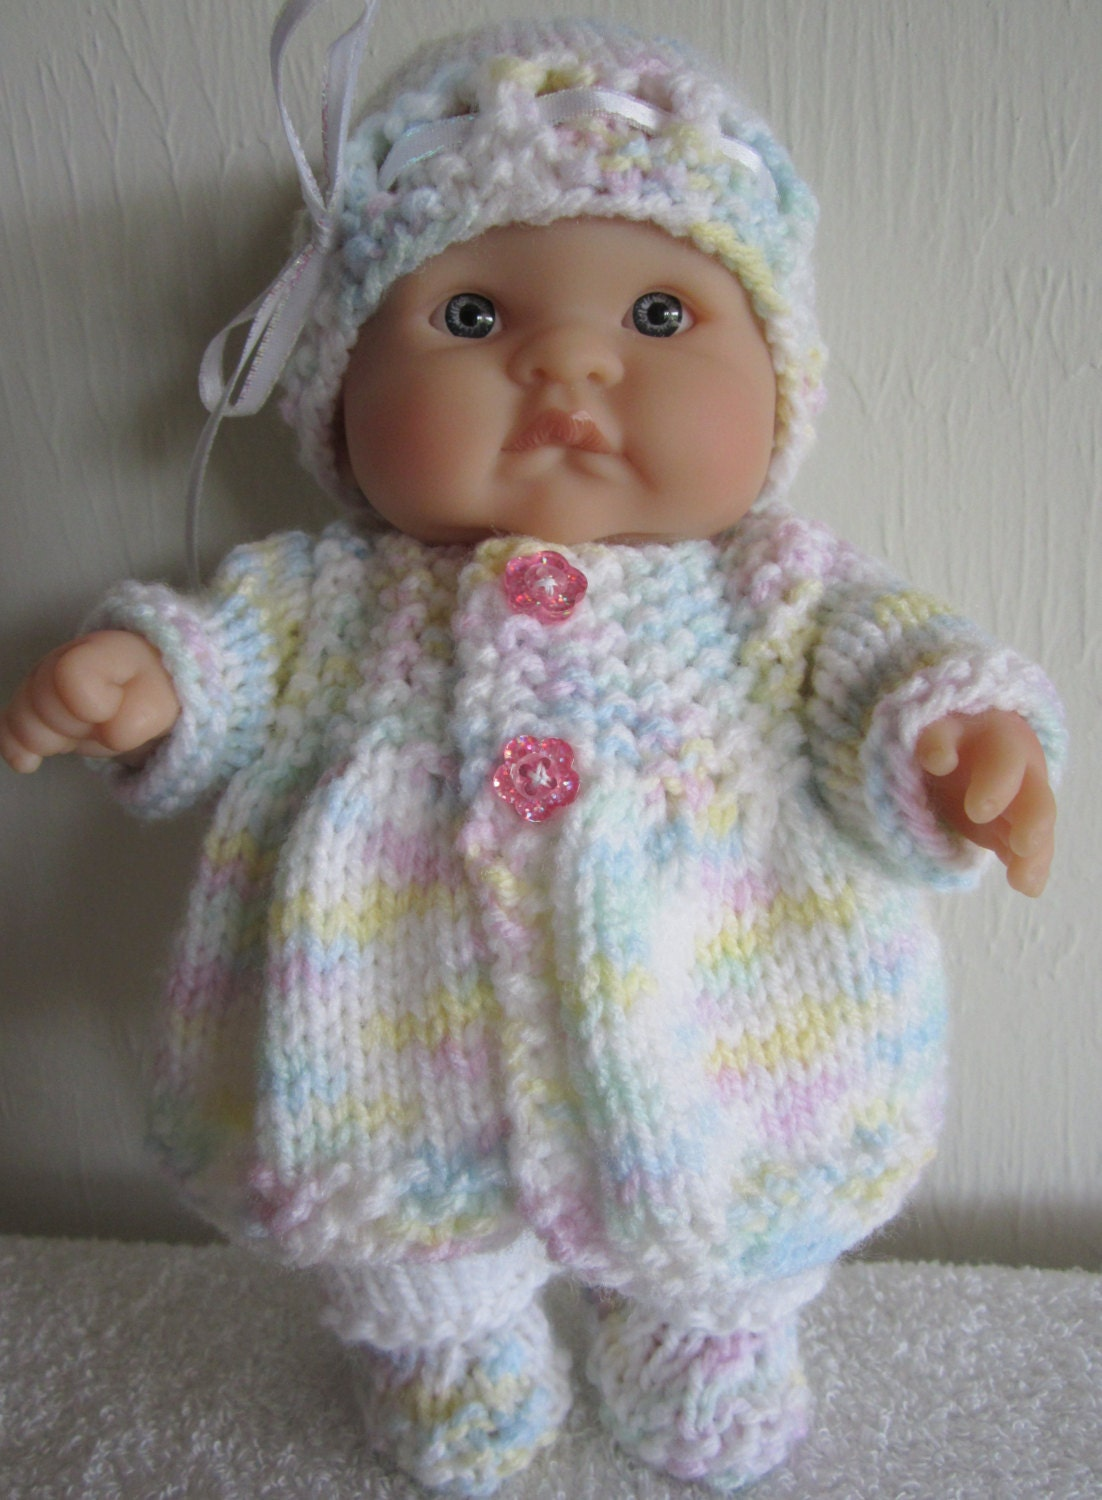 Knitting Baby Doll : Knitting pattern berenguer baby doll matinee jacket set for